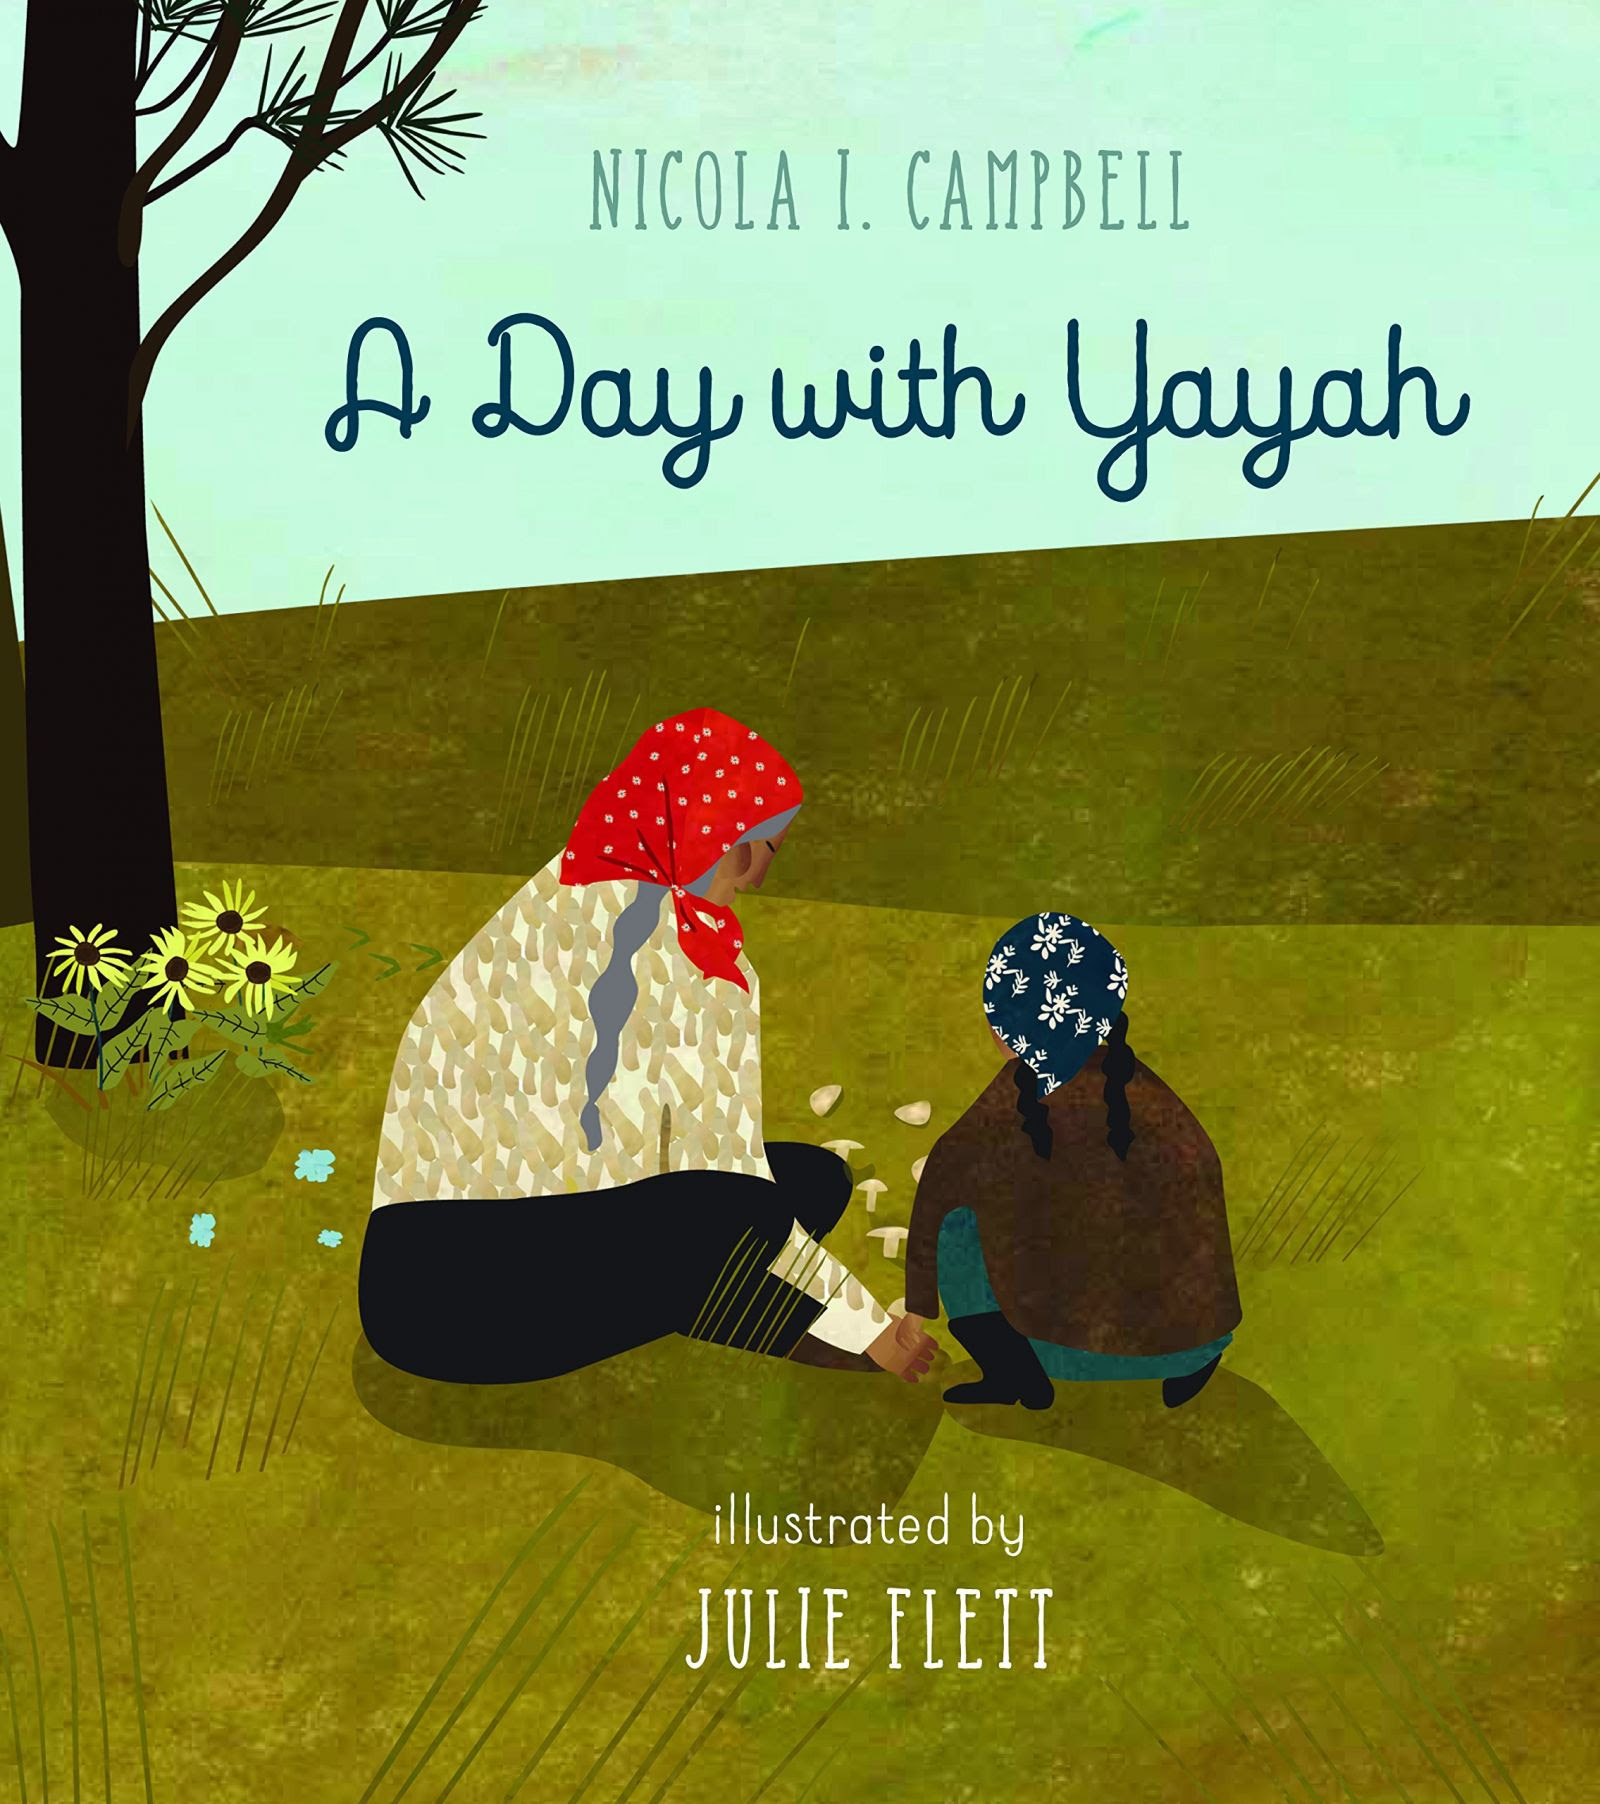 A Day with Yayah by Nicole I. Campbell